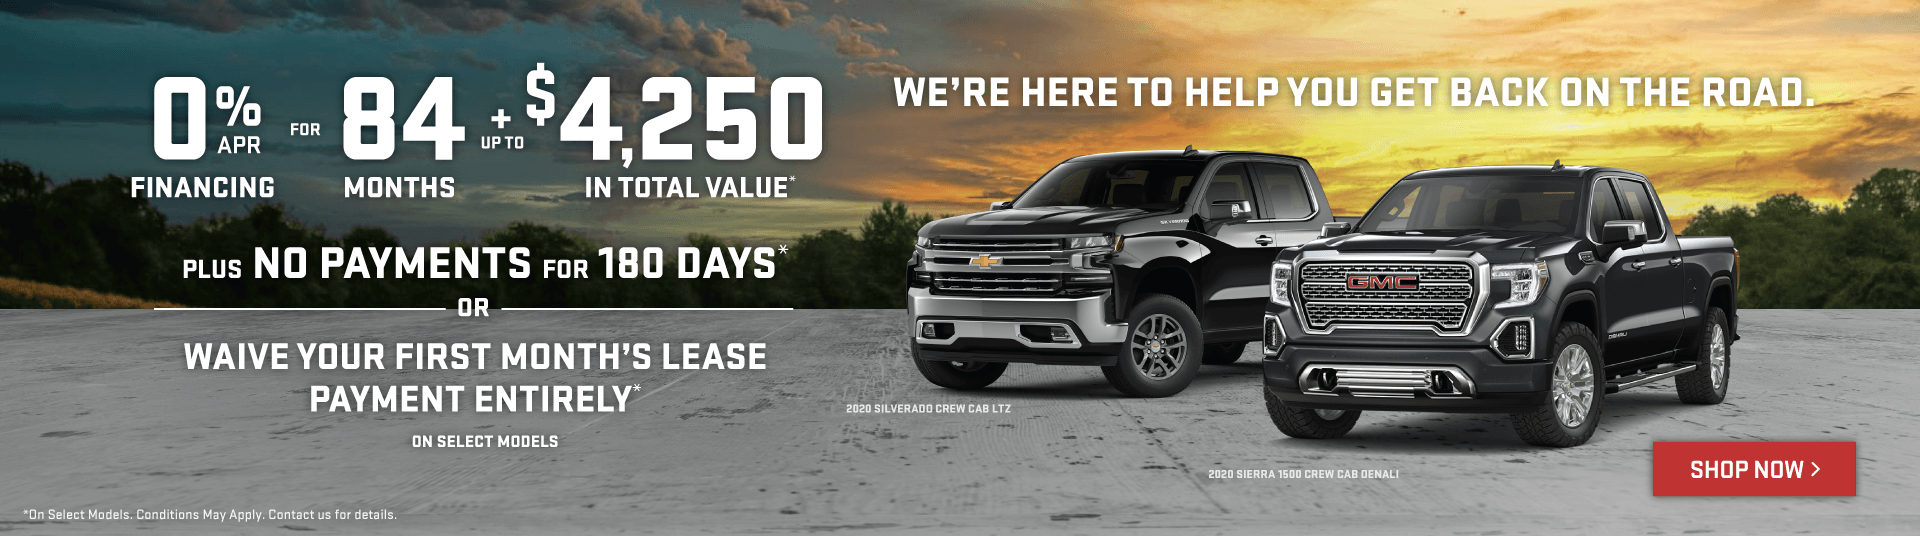 Chevrolet Silverado and GMC Sierra Offers in Etobicoke